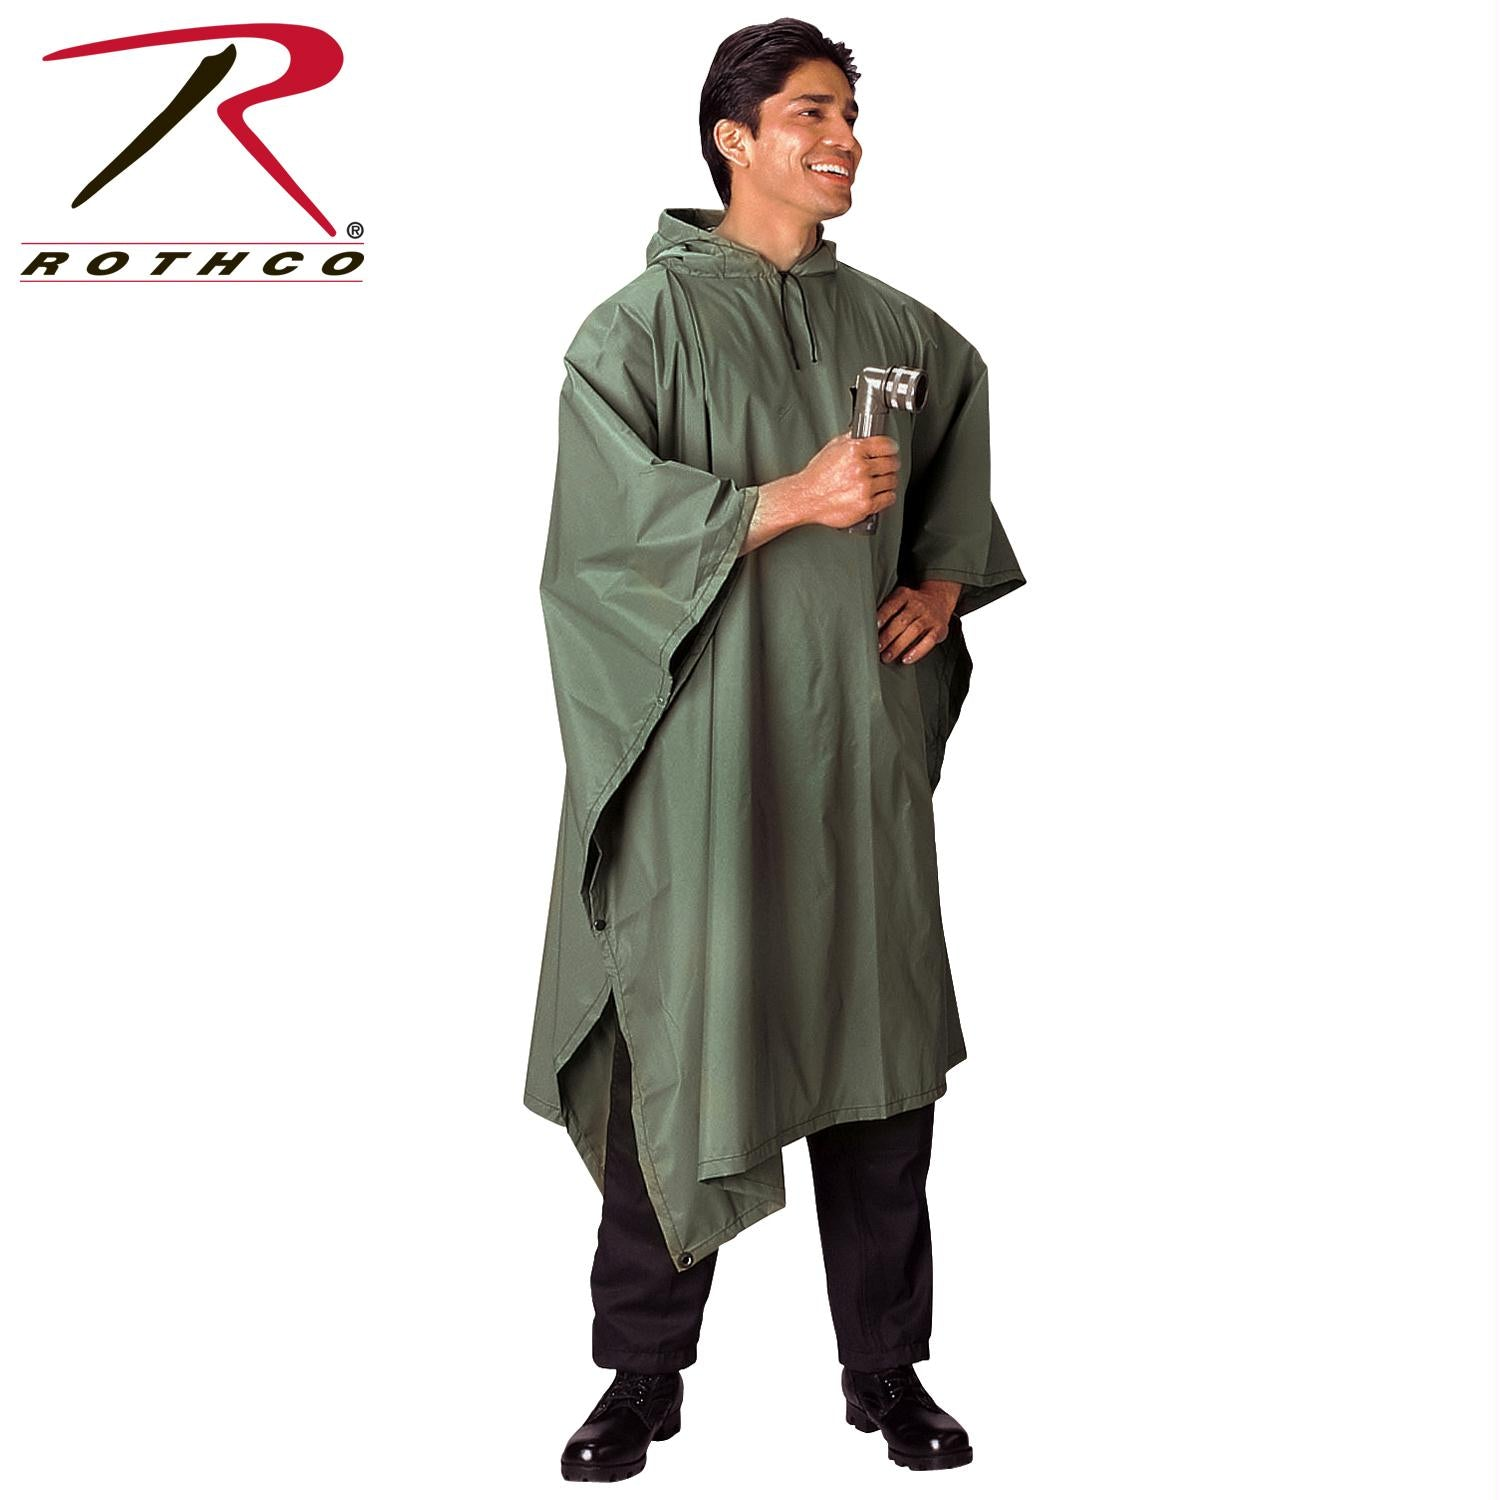 Rothco G.I. Type Military Rip-Stop Poncho - Olive Drab